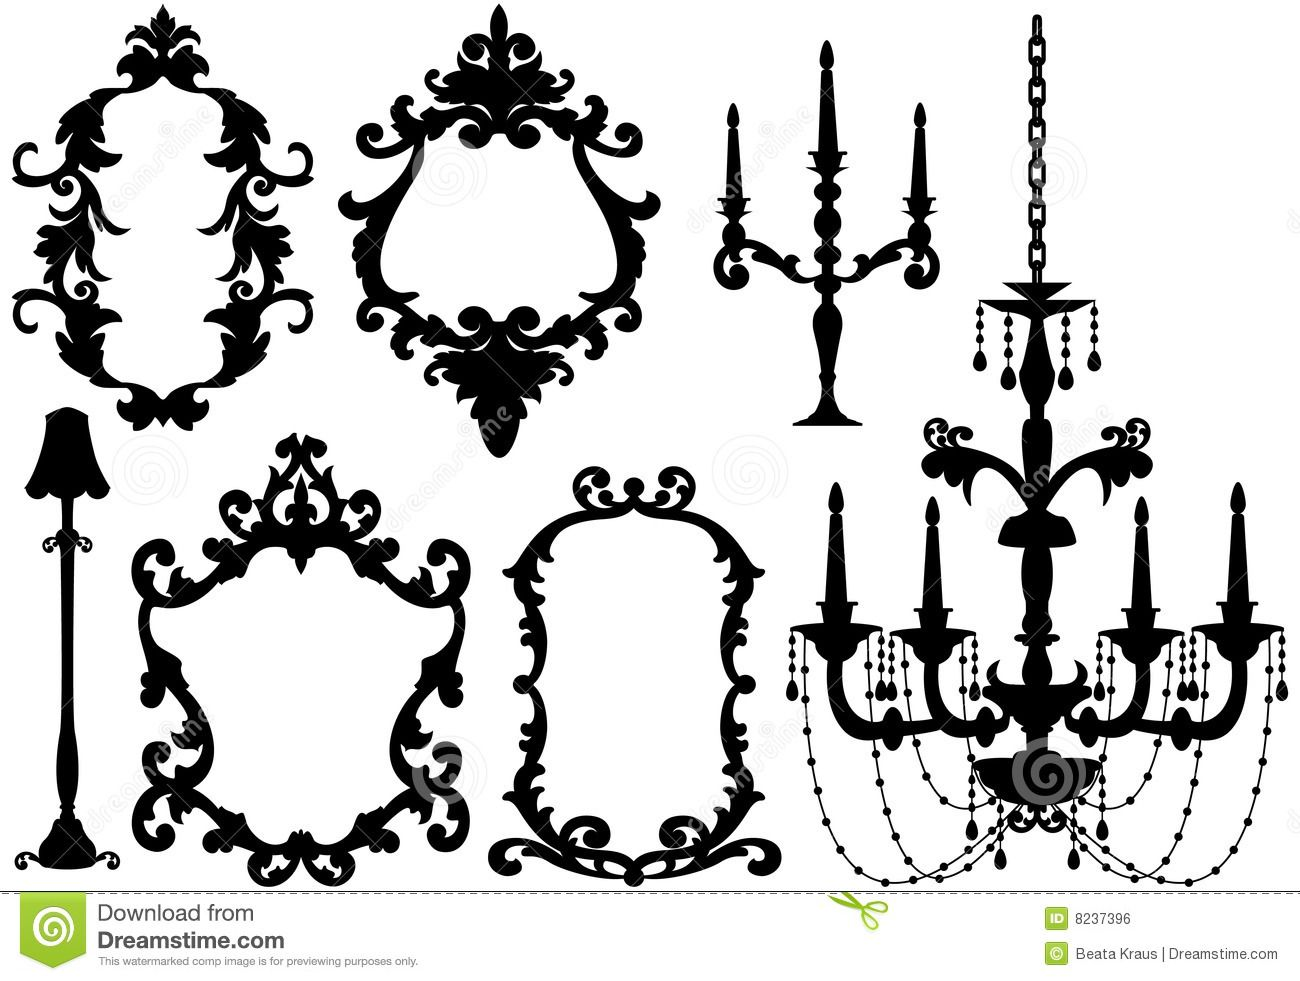 Antique picture frames and chandelier royalty free stock image antique picture frames and chandelier royalty free stock image arubaitofo Gallery